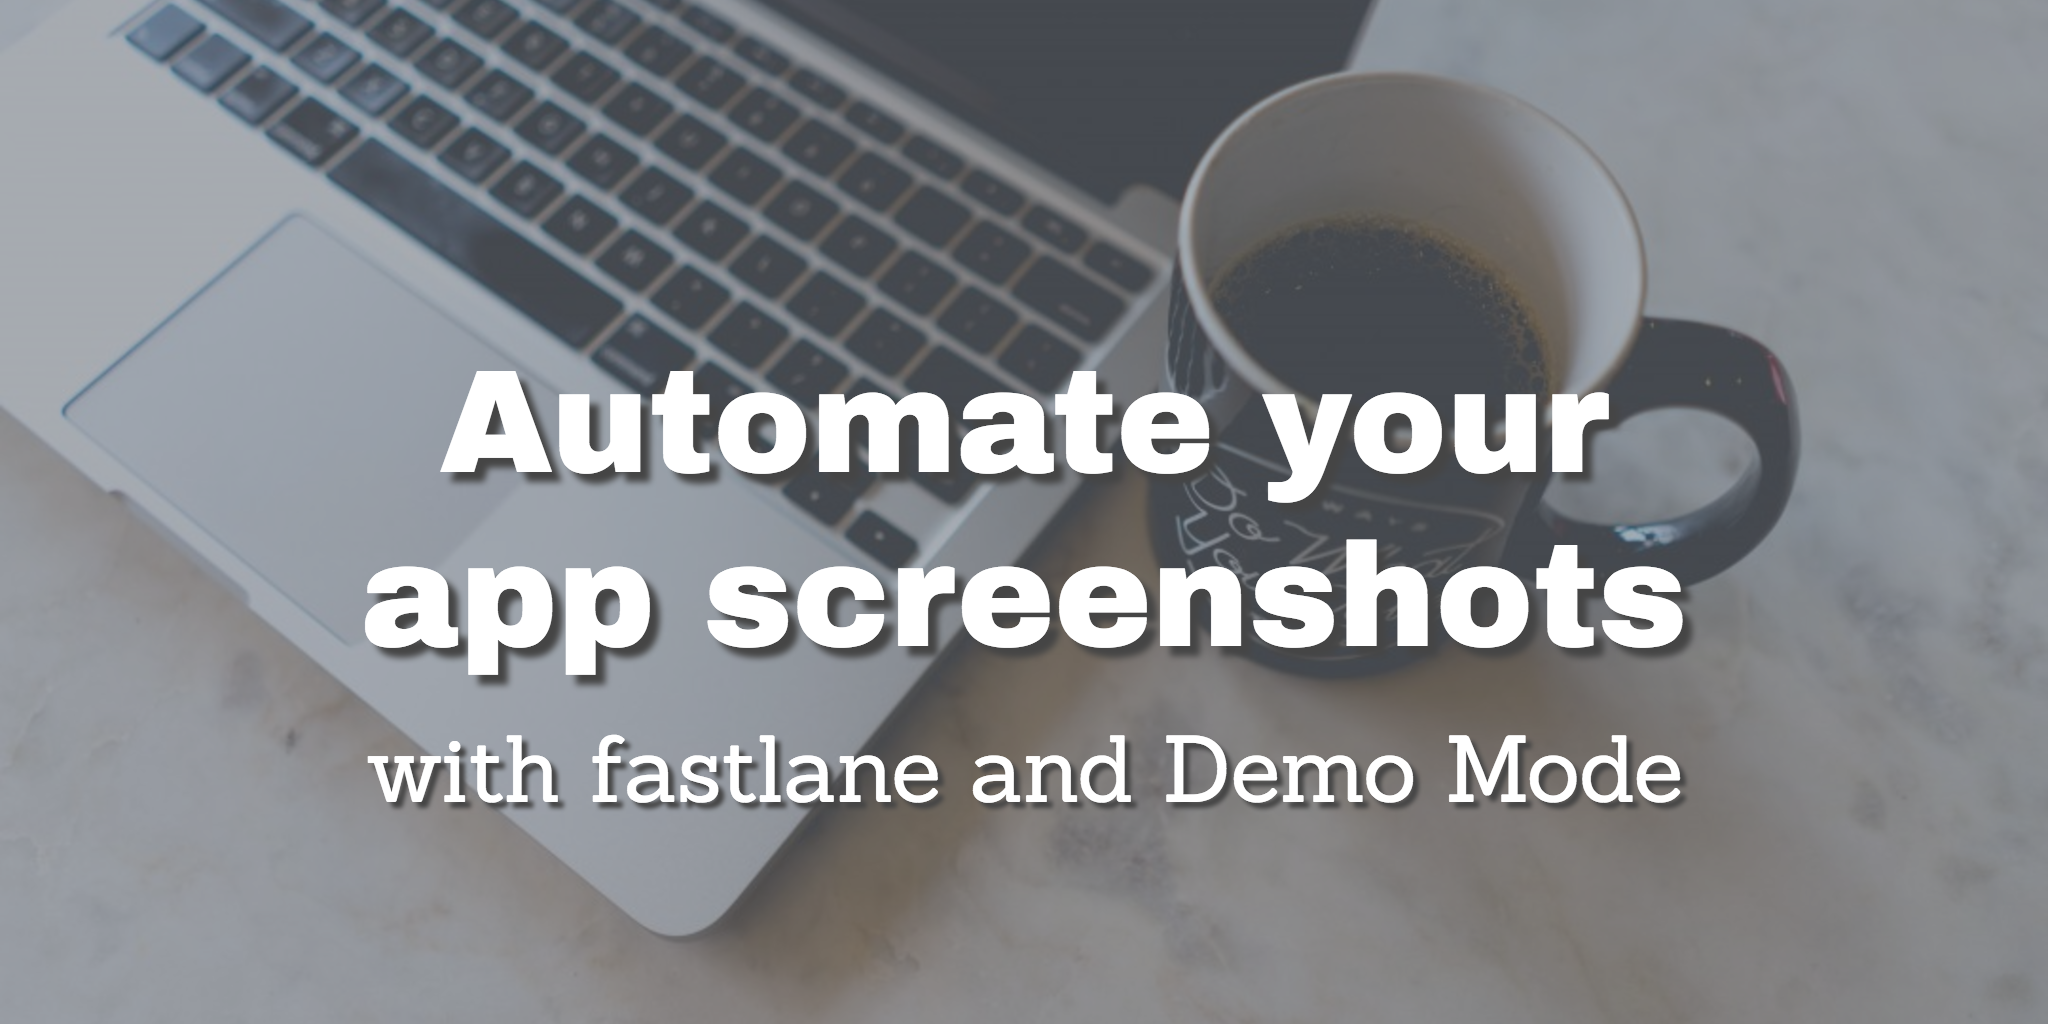 Automate your app screenshots - ProAndroidDev